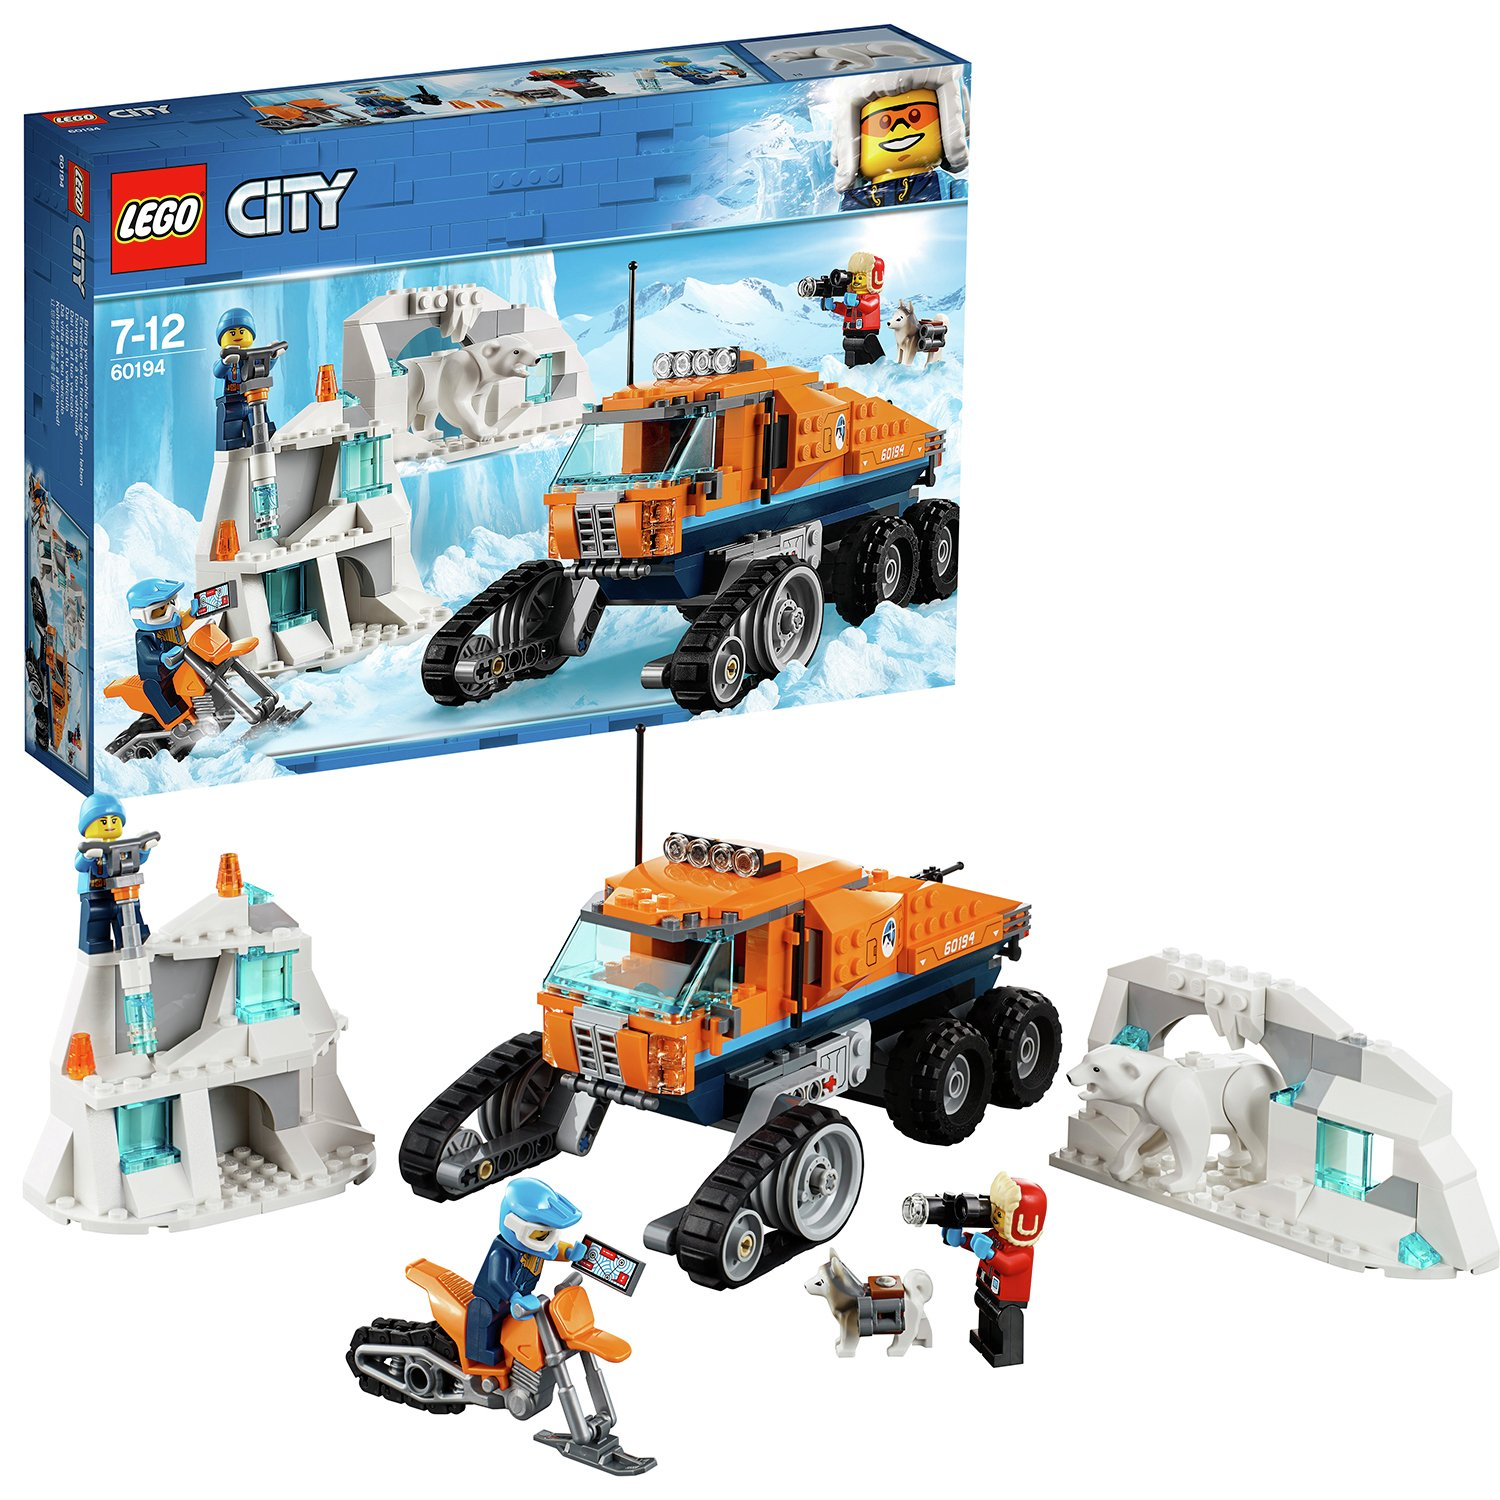 LEGO City Expedition Arctic Scout Toy Truck - 60194